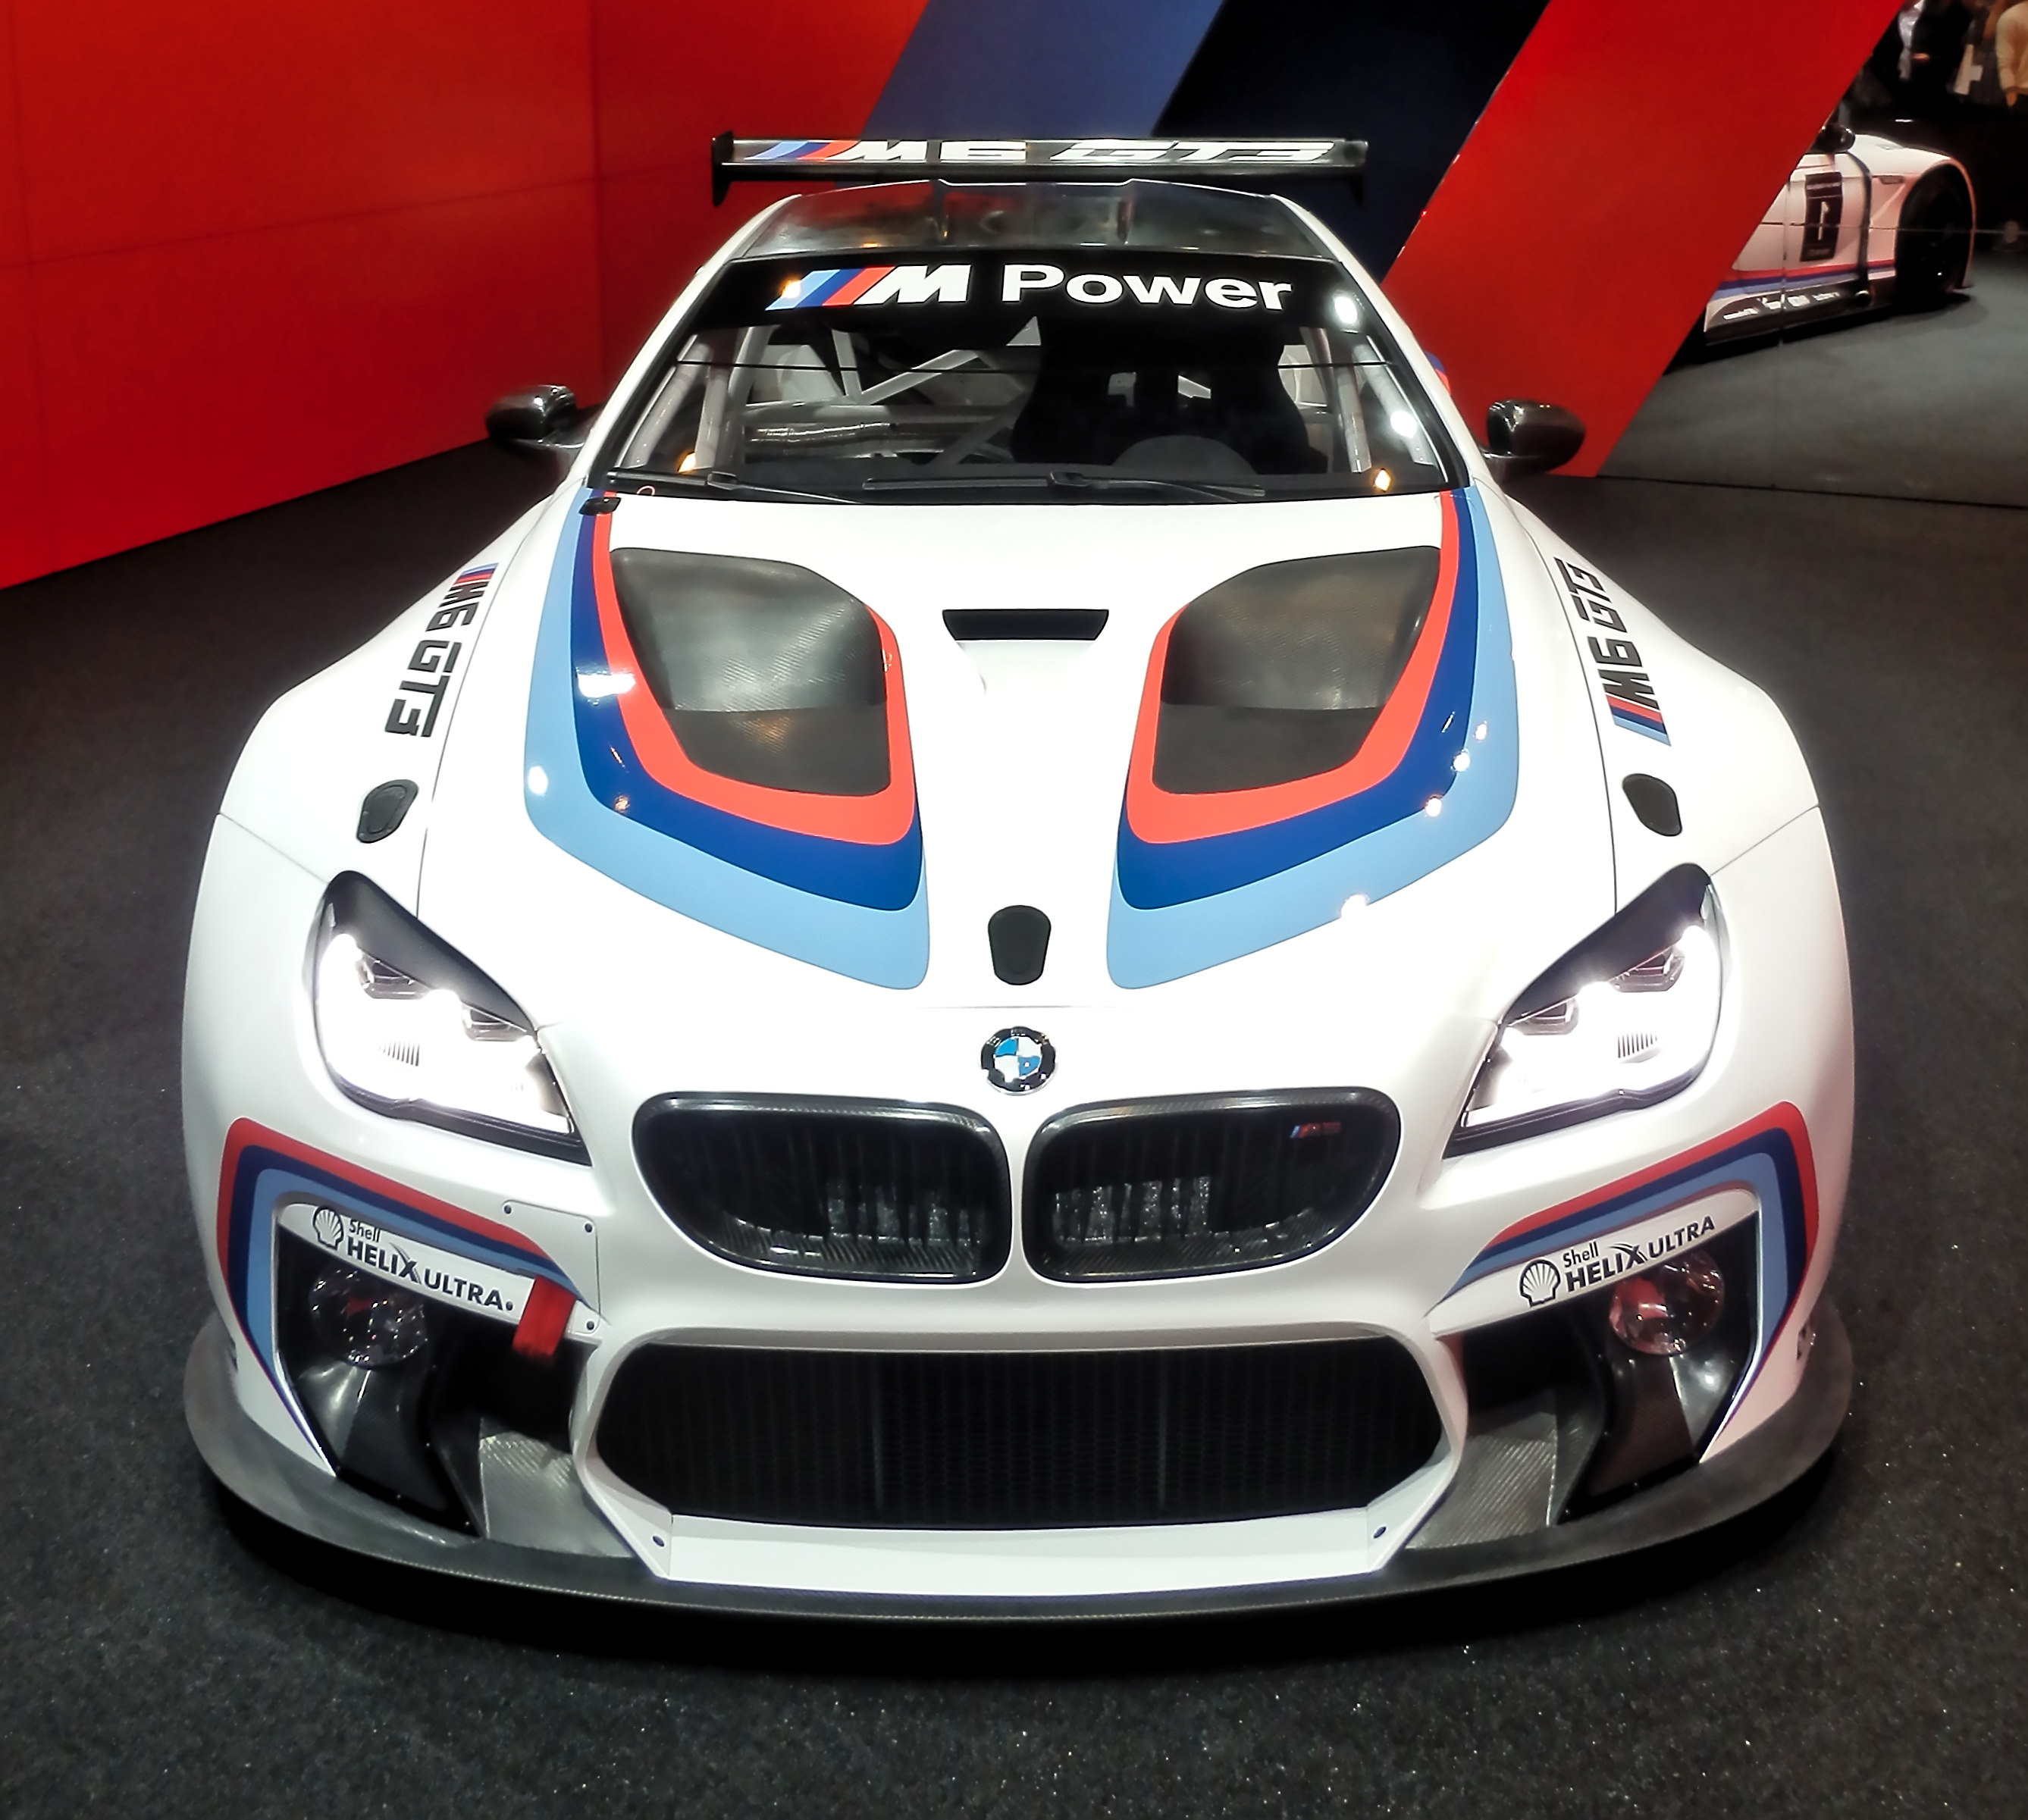 file bmw m6 gt3 iaa wikimedia commons. Black Bedroom Furniture Sets. Home Design Ideas